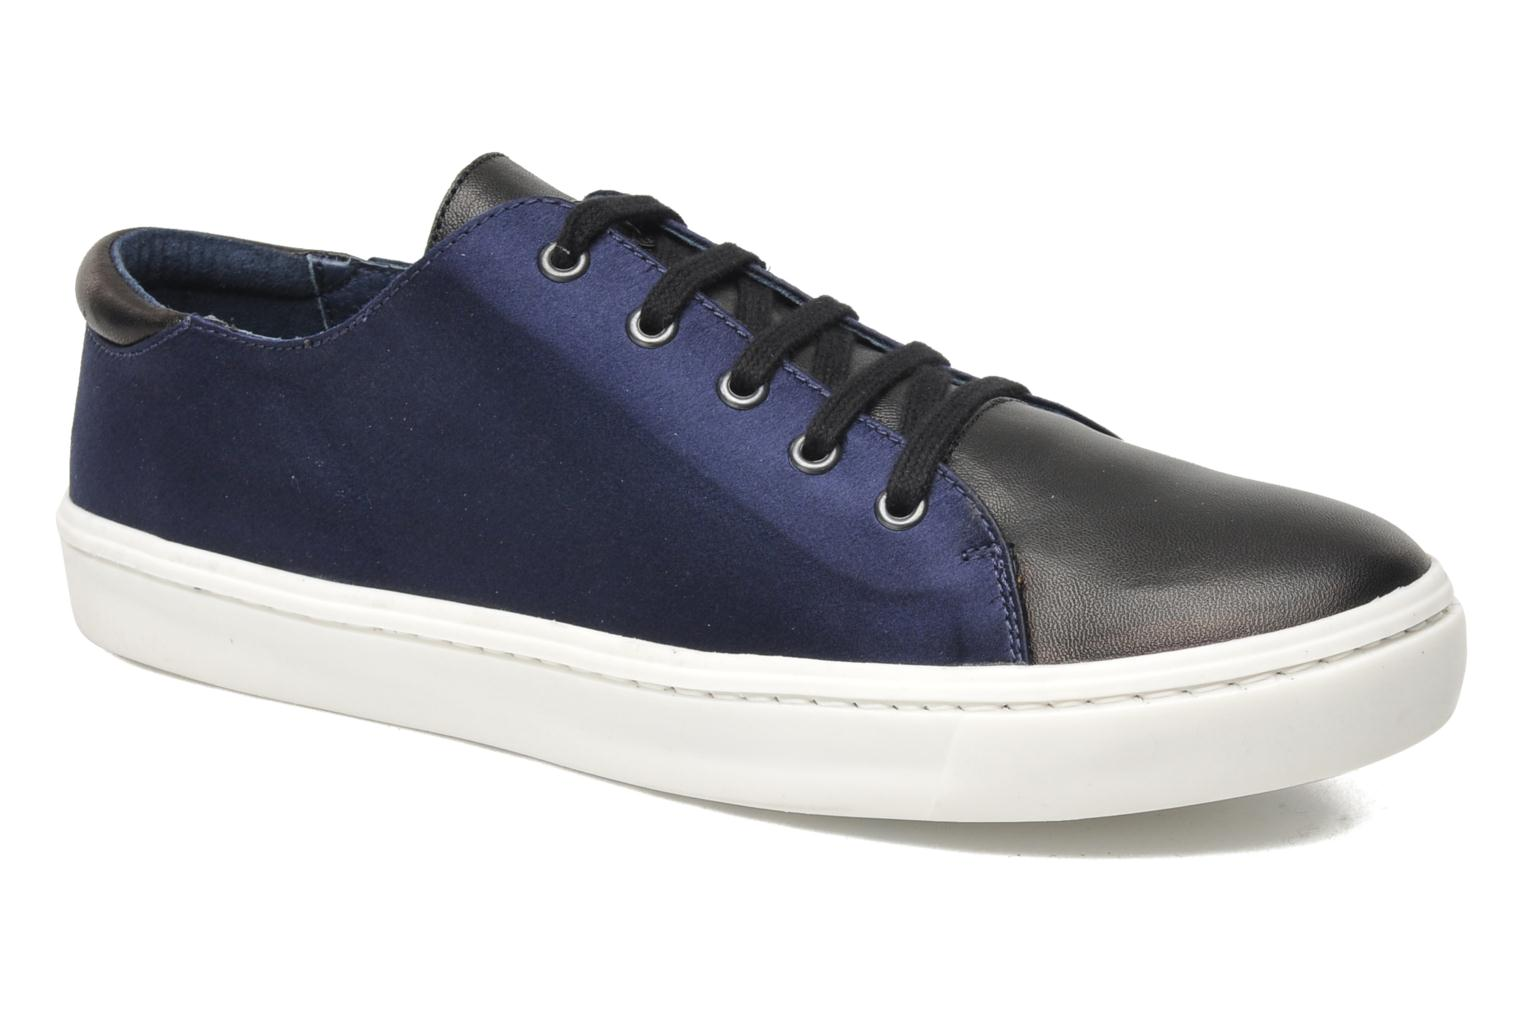 Sneakers Classic Low by Opening Ceremony